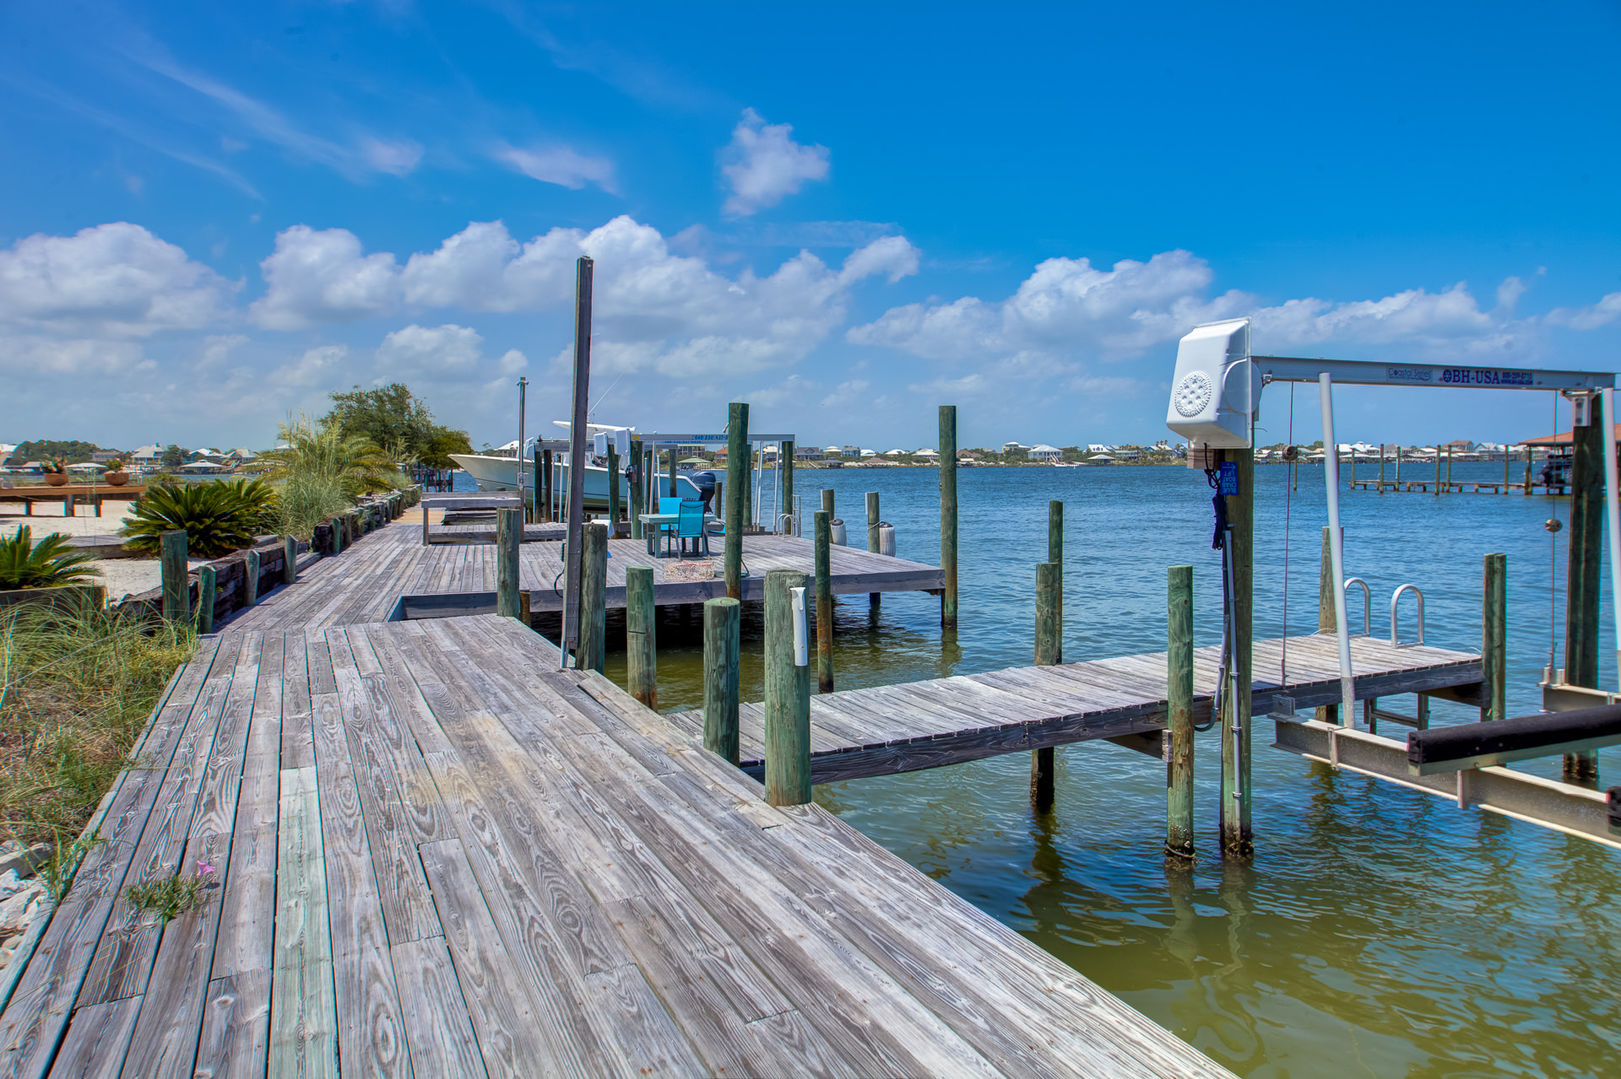 Enjoy a Relaxing Walk Alone the Boat Docks.